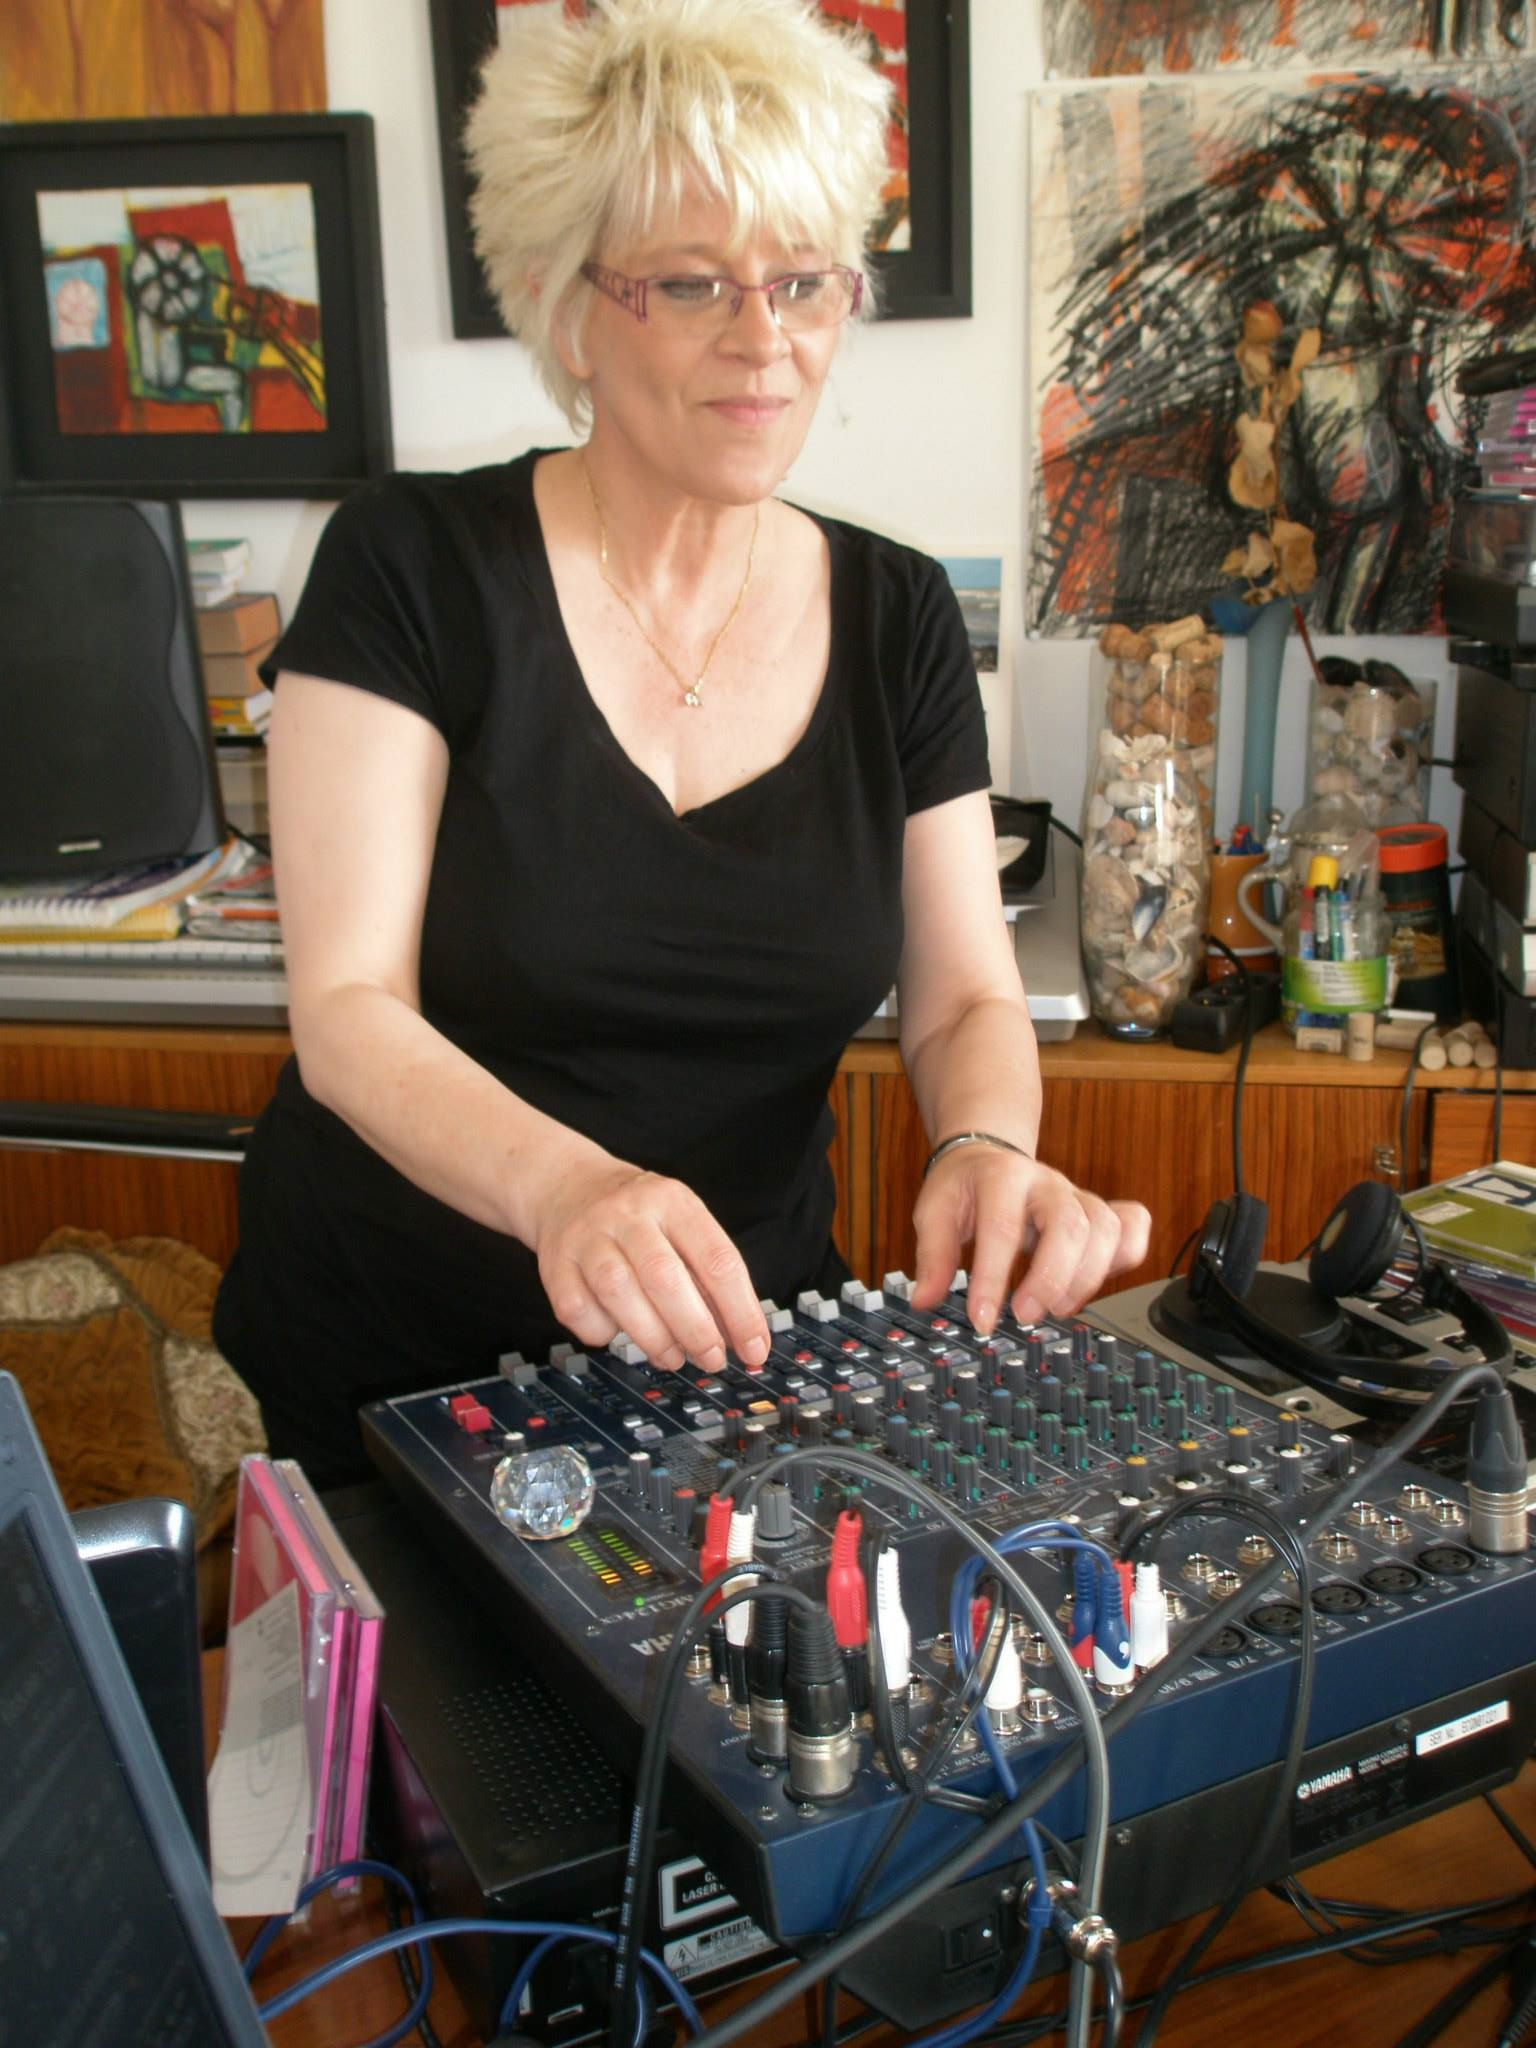 Catherine Ferry  captured LIVE IN THE MIX for Popmundial Radio